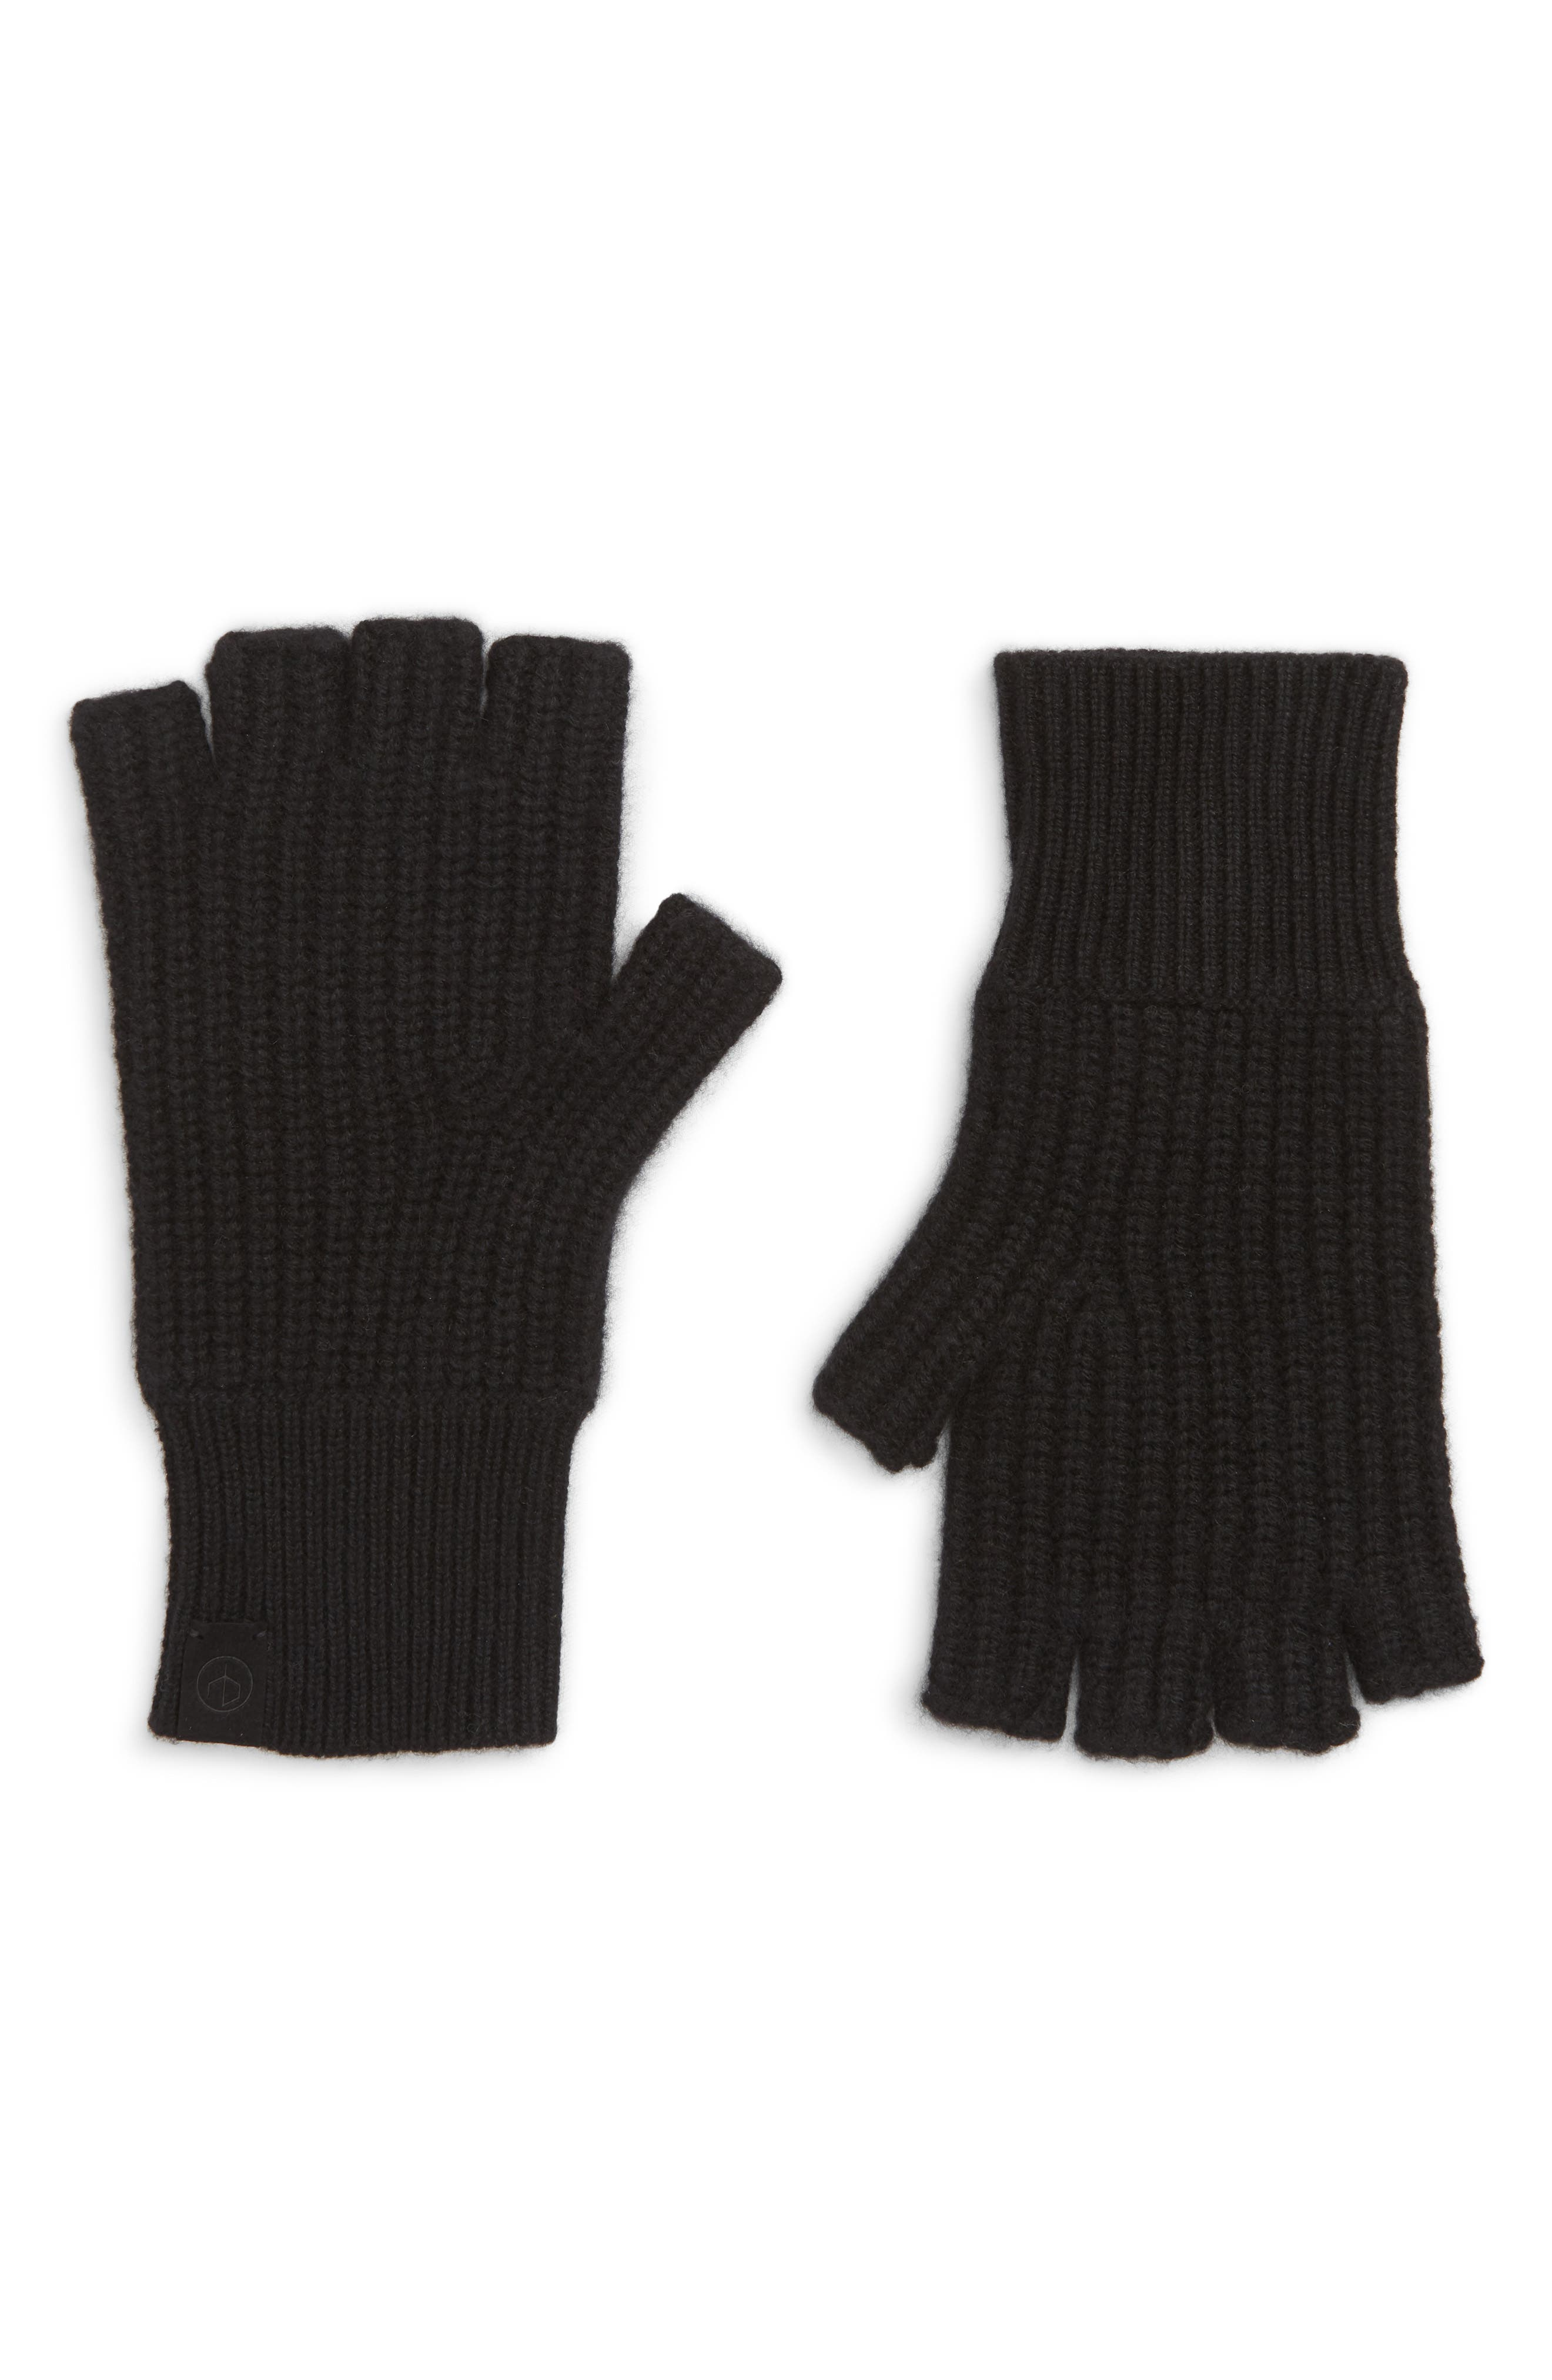 Ace Rib Knit Cashmere Fingerless Gloves,                             Main thumbnail 1, color,                             001